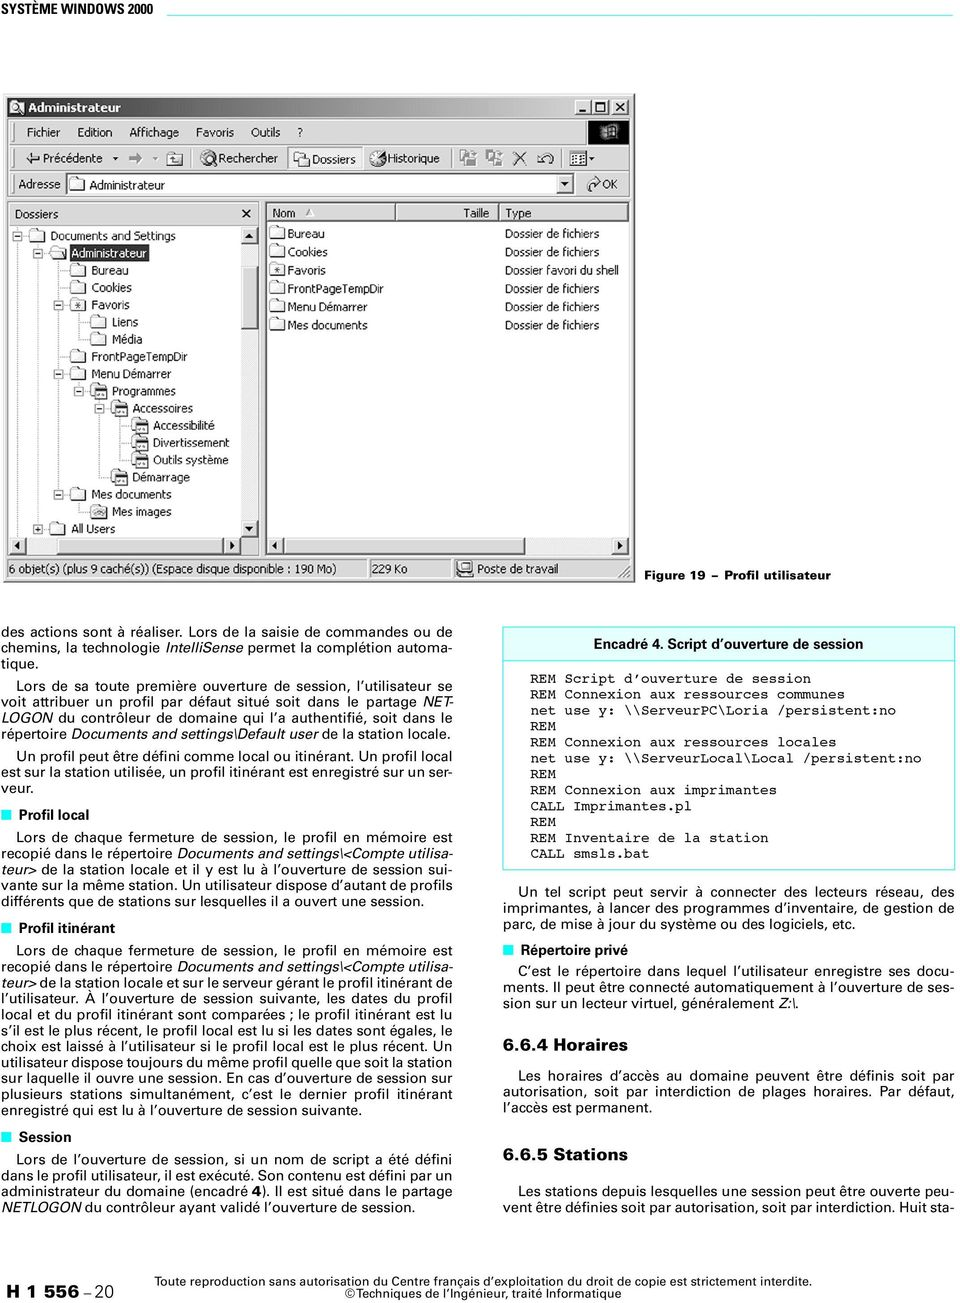 répertoire Documents and settings\default user de la station locale. Un profil peut être défini comme local ou itinérant.